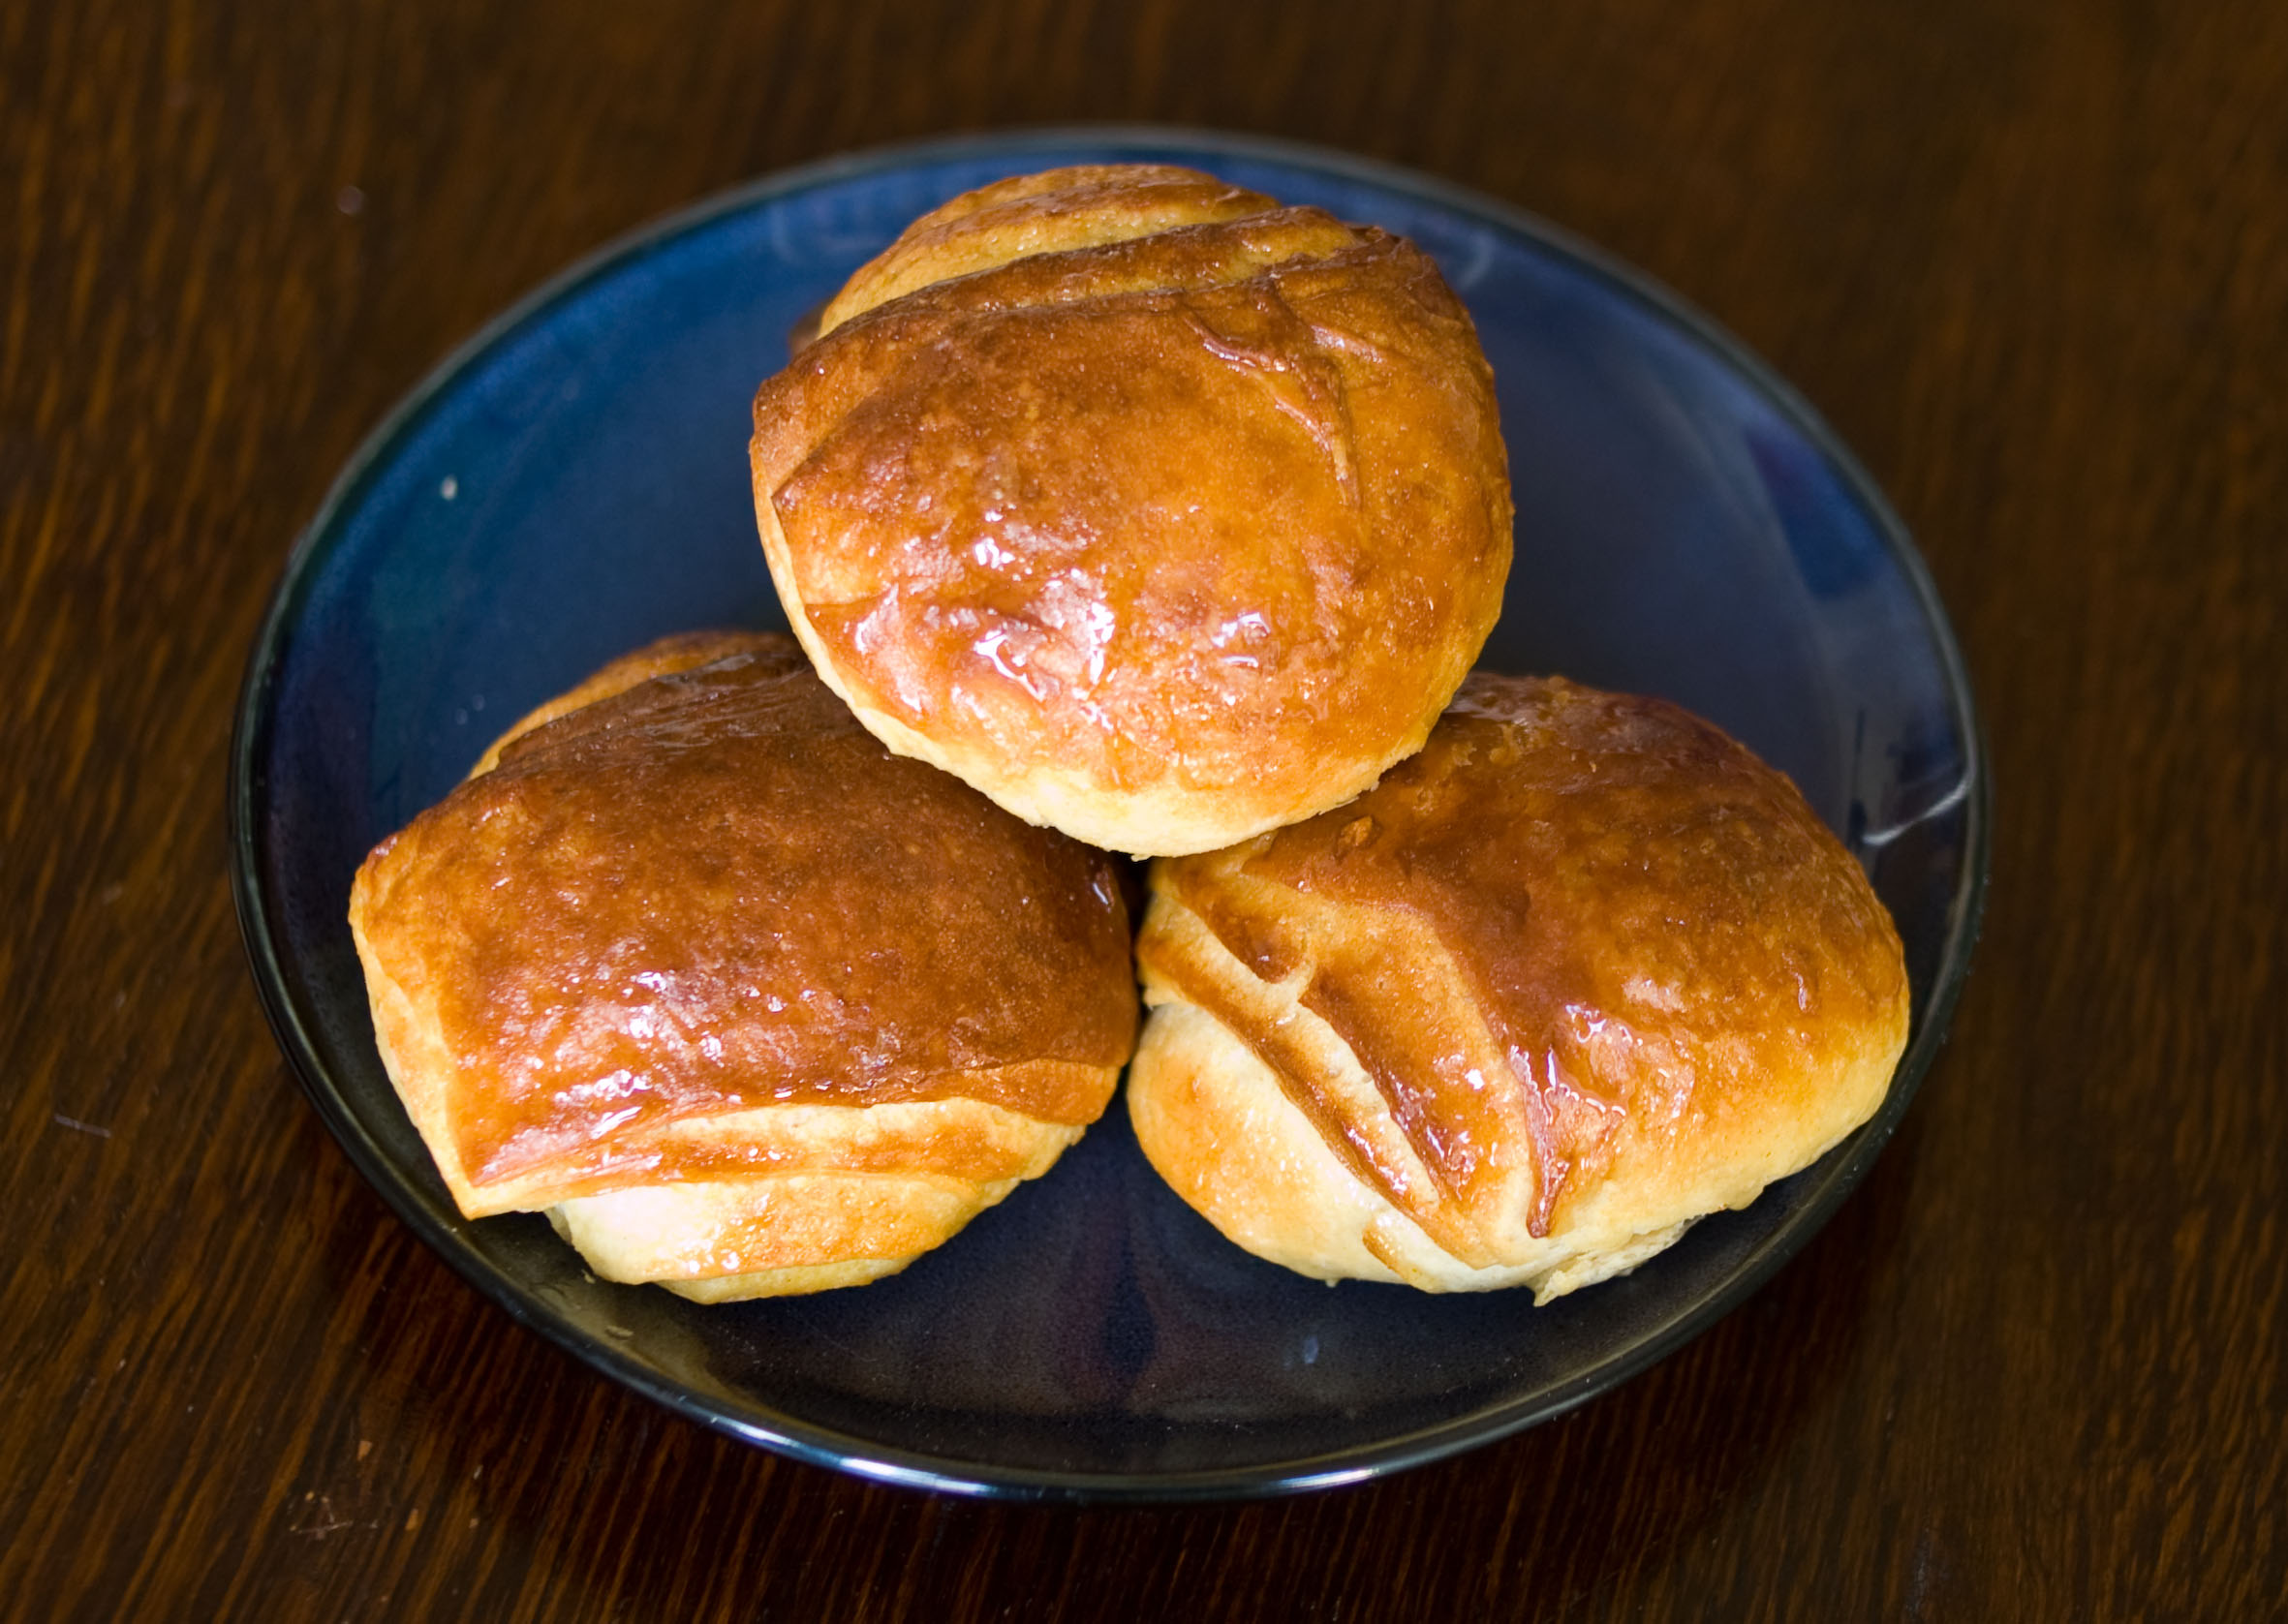 These buns were made to resemble one of the popular Japanese Kobitos characters and gush milk custard when squeezed